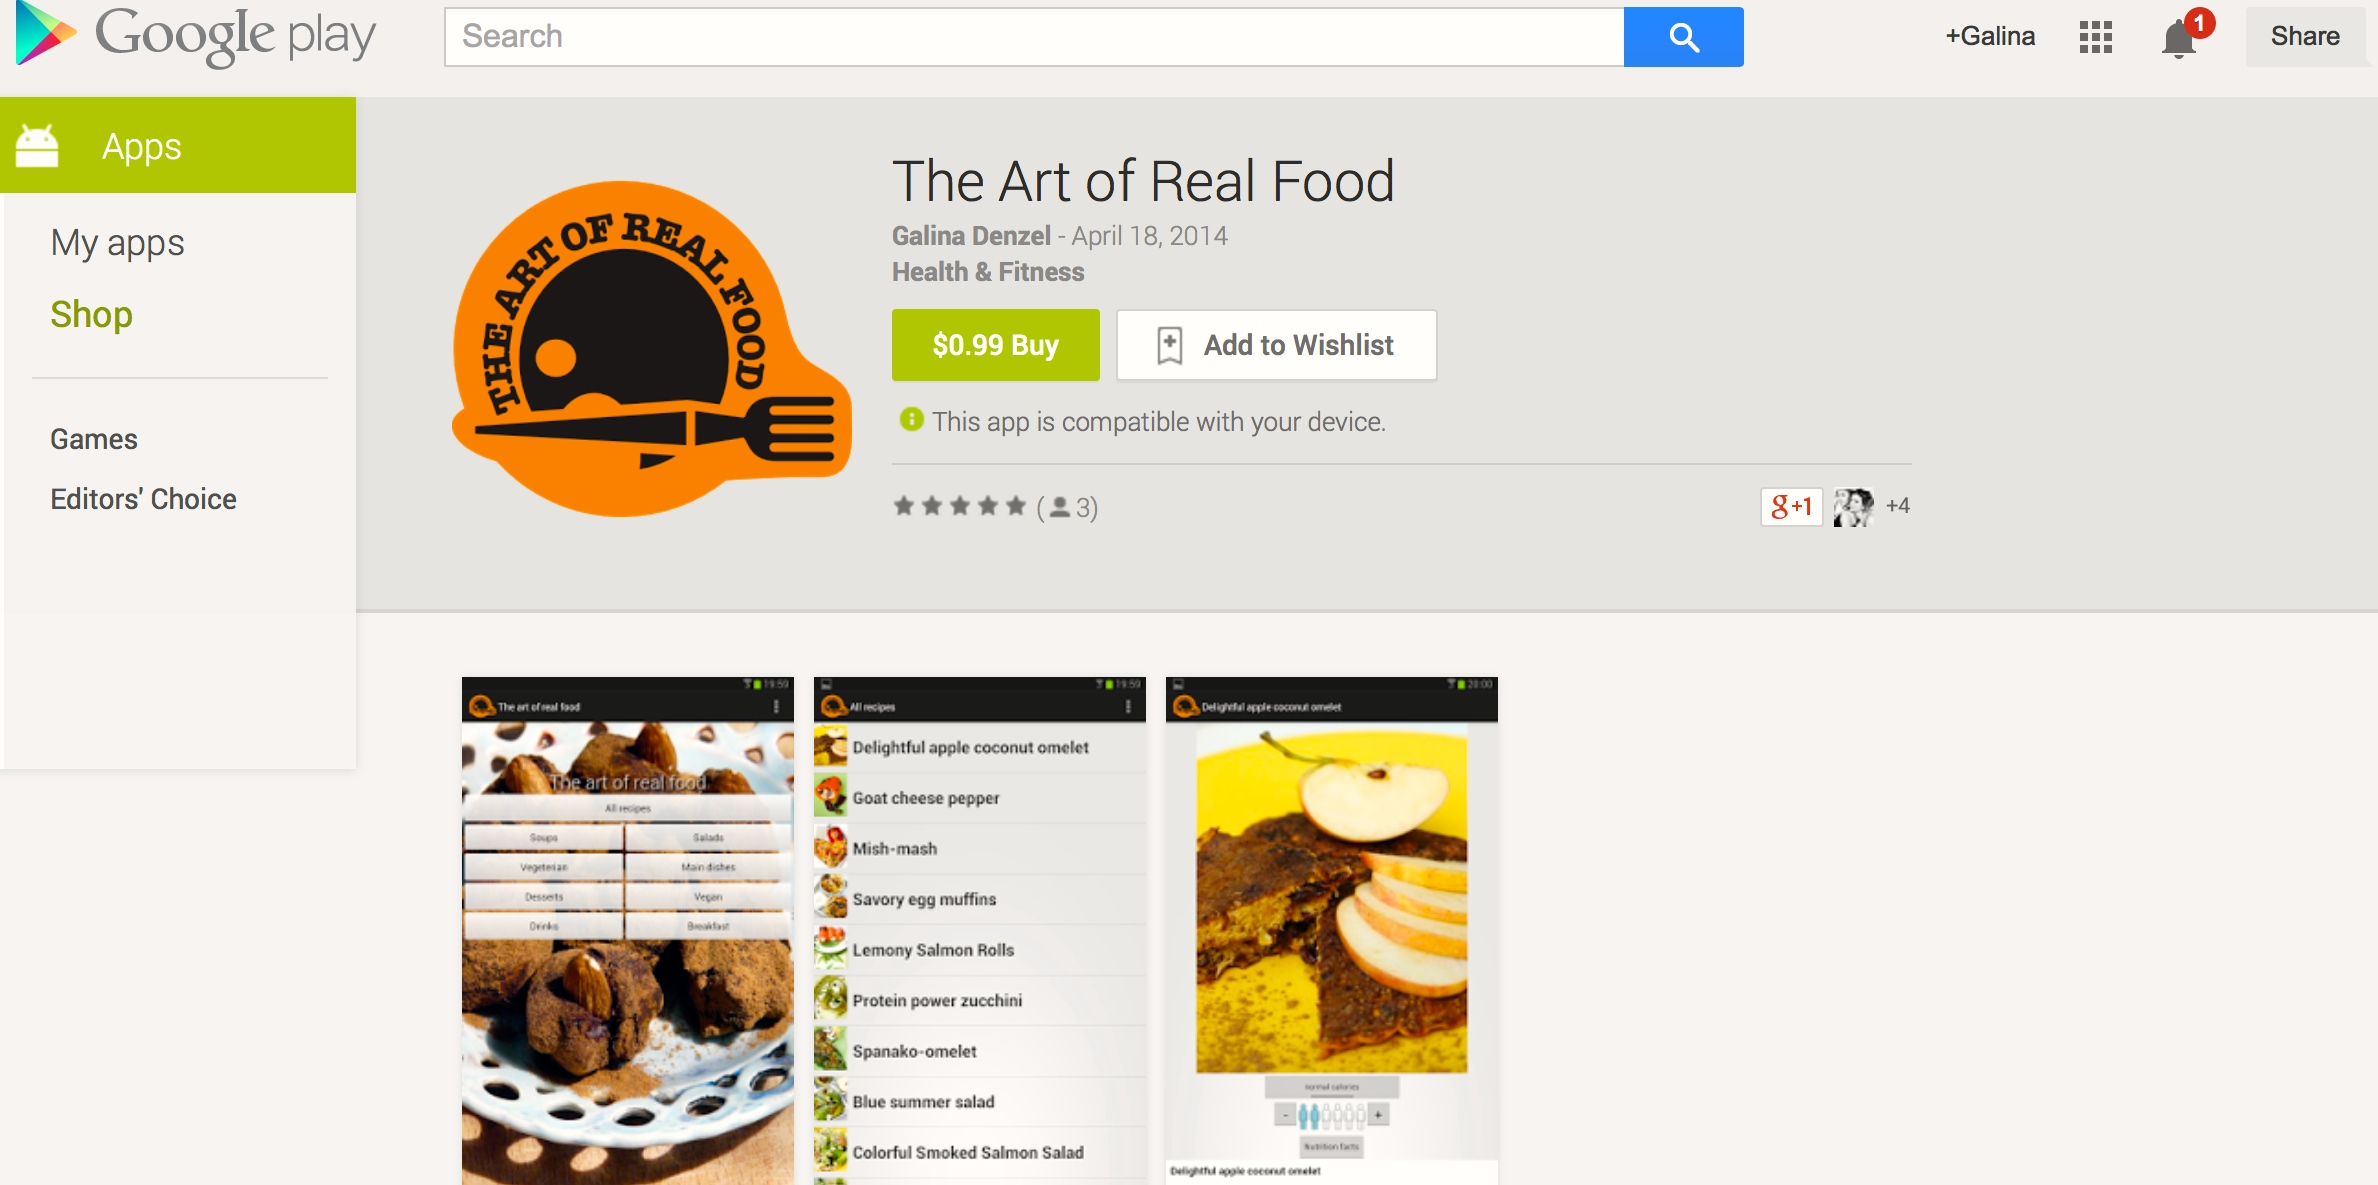 OMG the Art of Real Food app is here in English